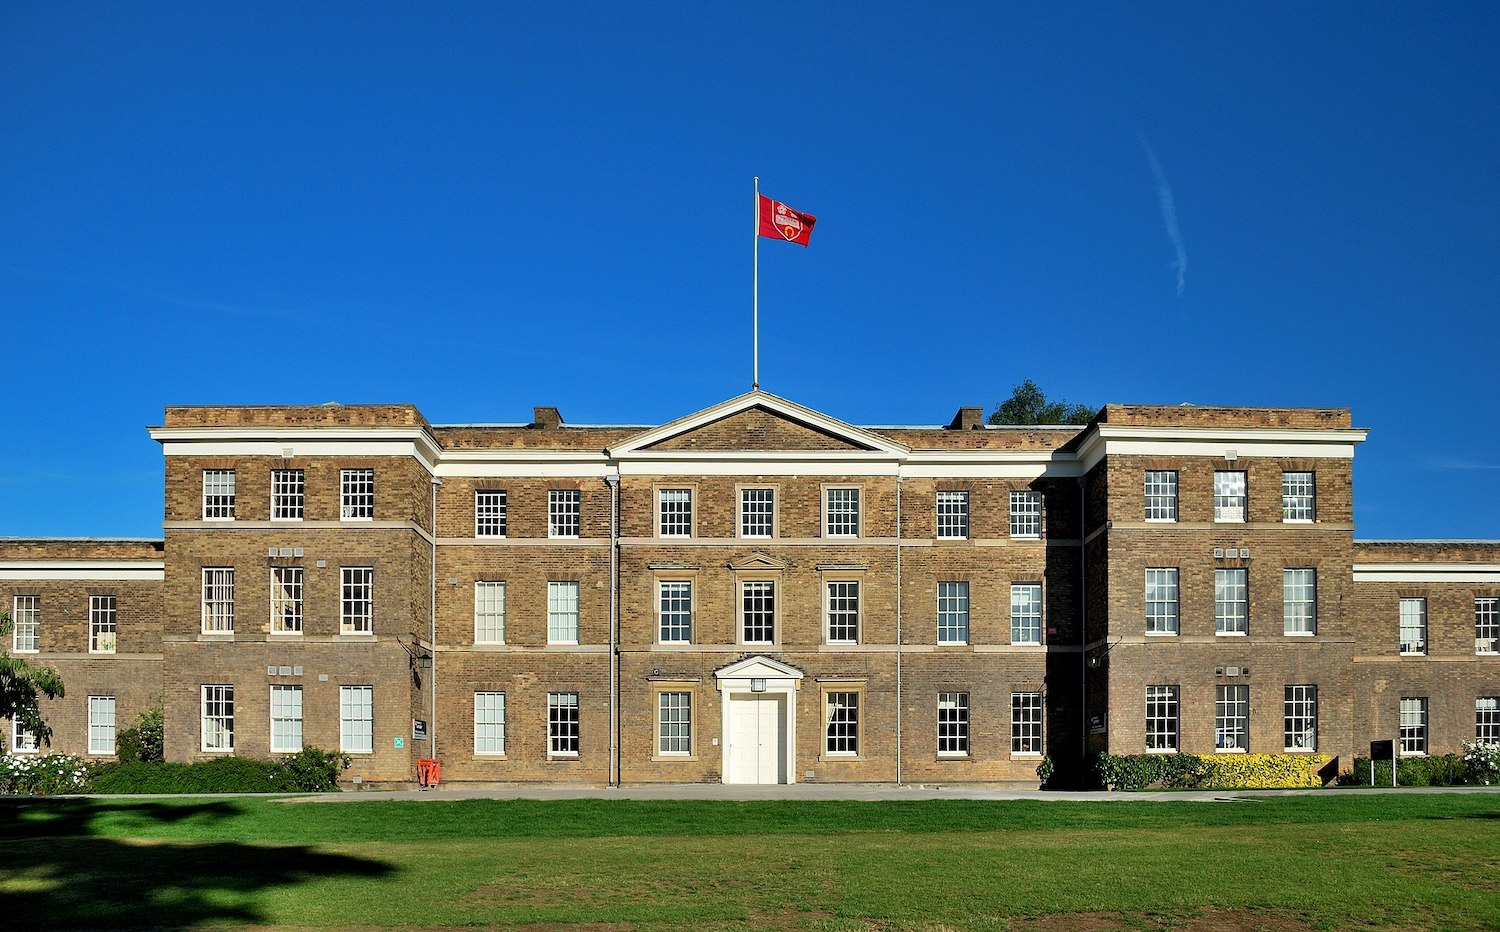 2048px-Fielding_Johnson_Building,_University_of_Leicester